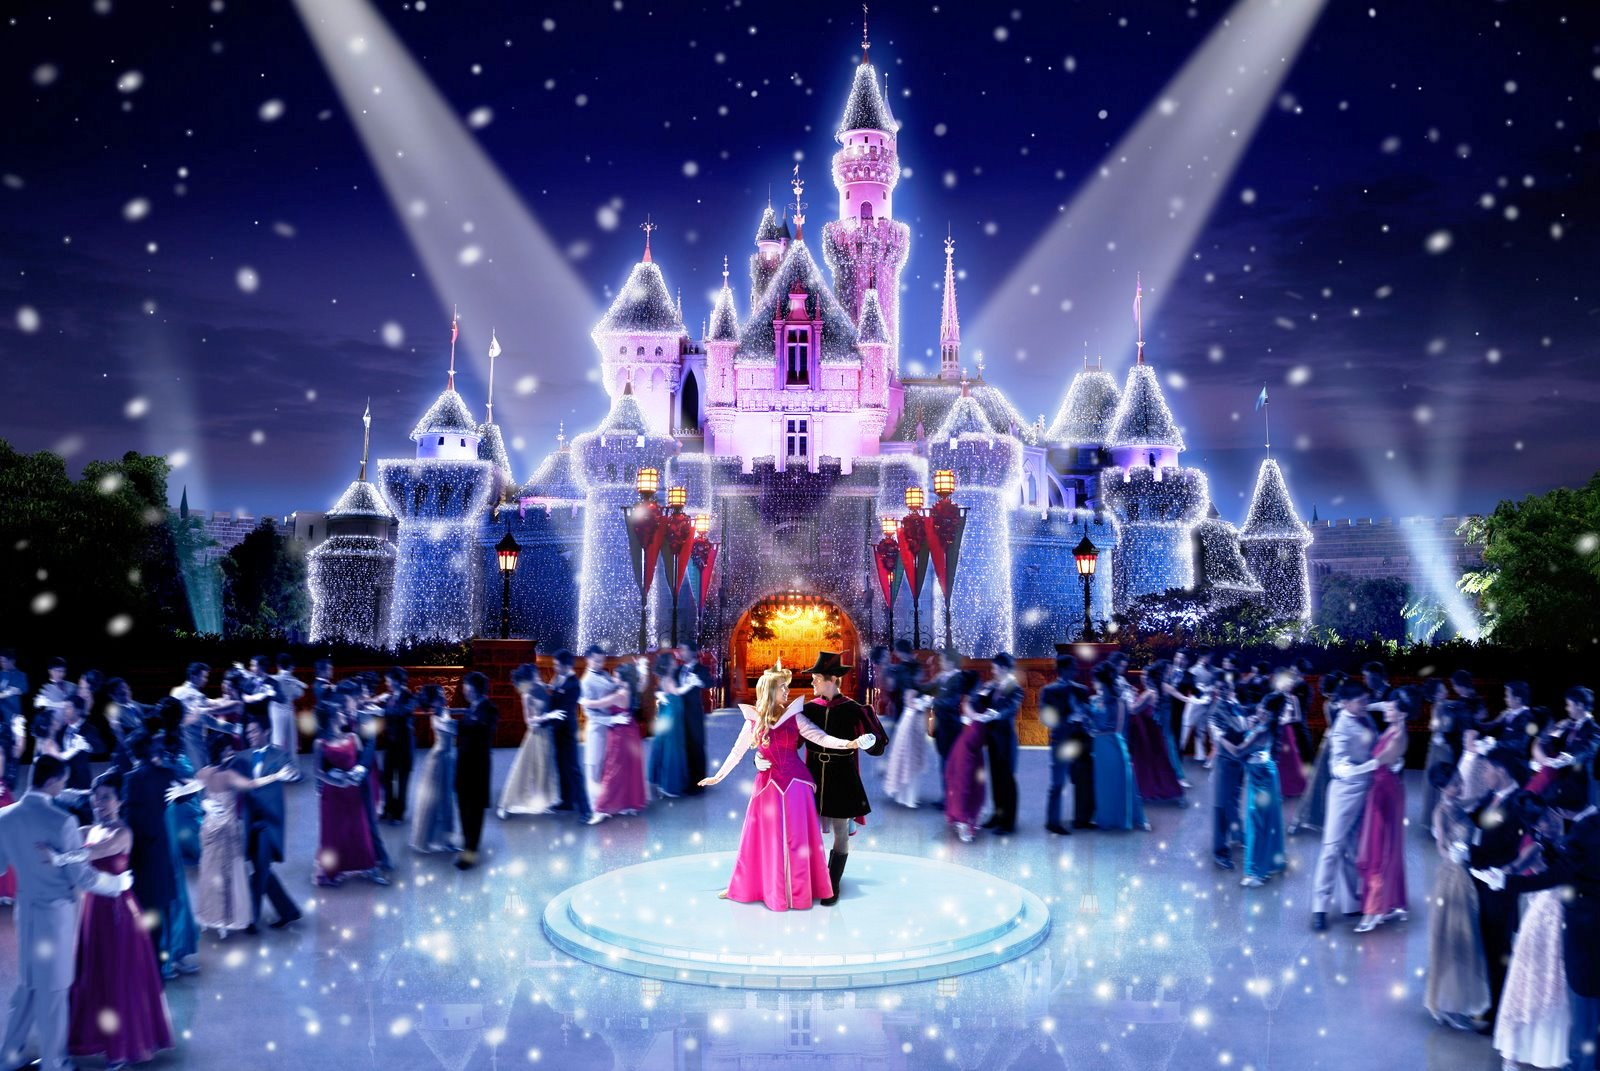 Royal christmas ball disney wiki fandom powered by wikia royal christmas ball voltagebd Gallery